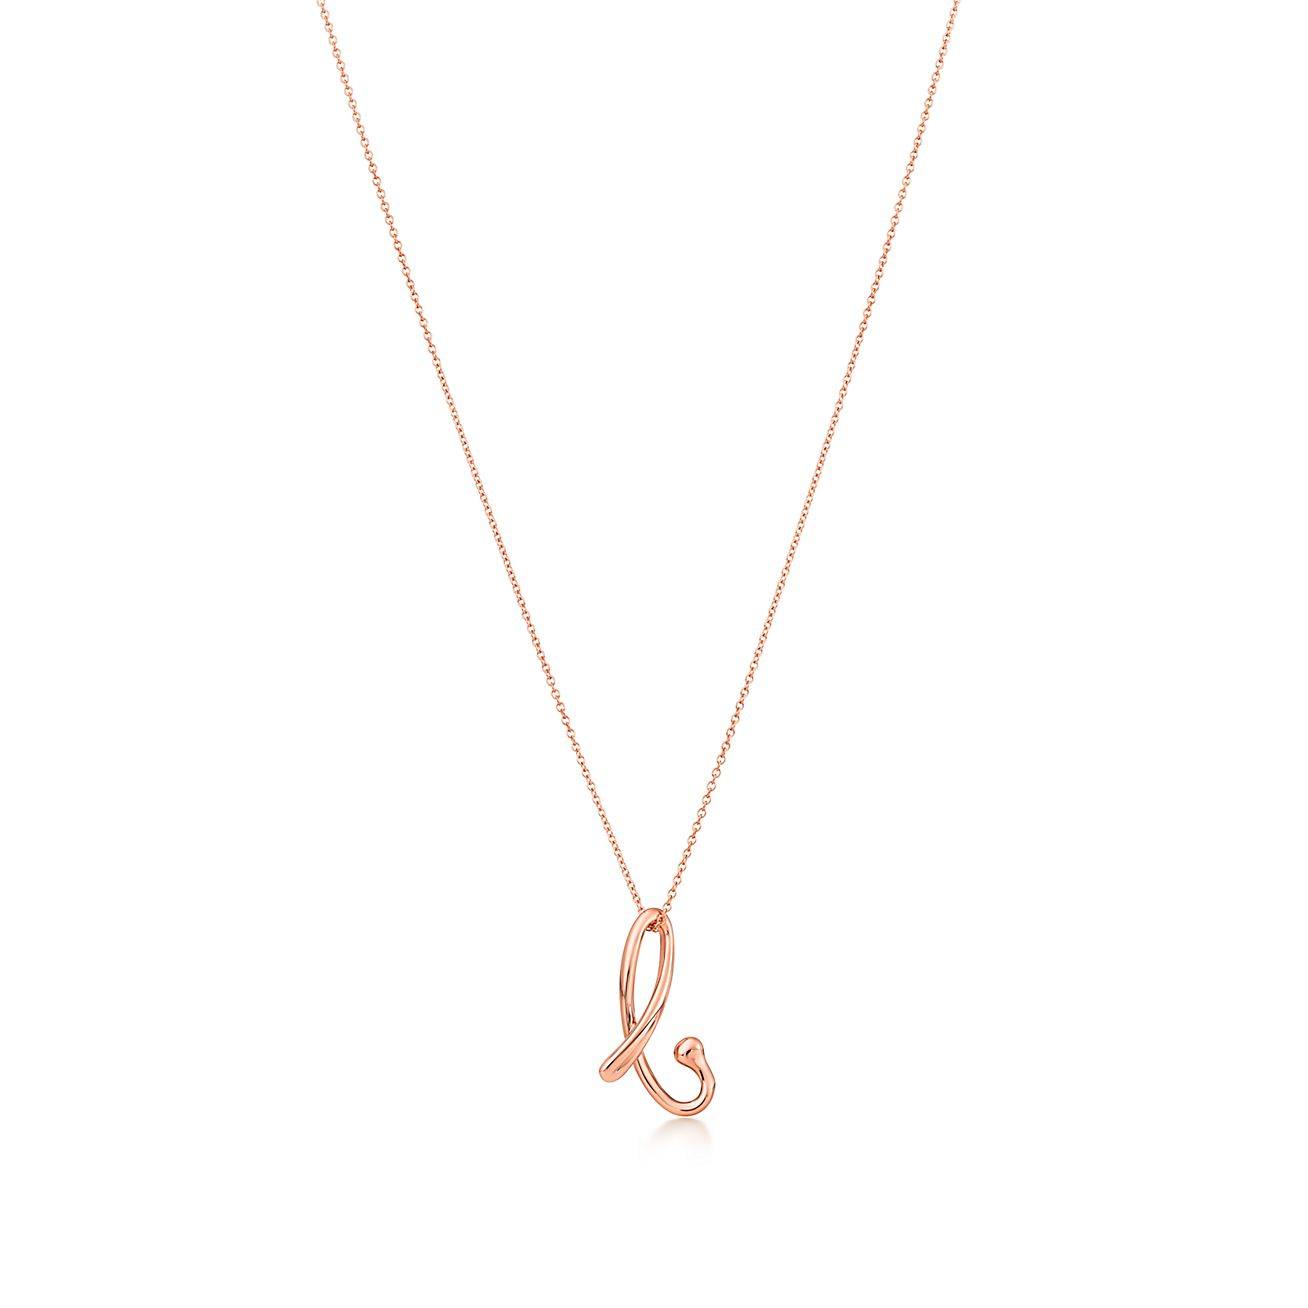 Elsa Peretti Alphabet pendant in 18k rose gold Letters A-Z available - Size J Tiffany & Co.